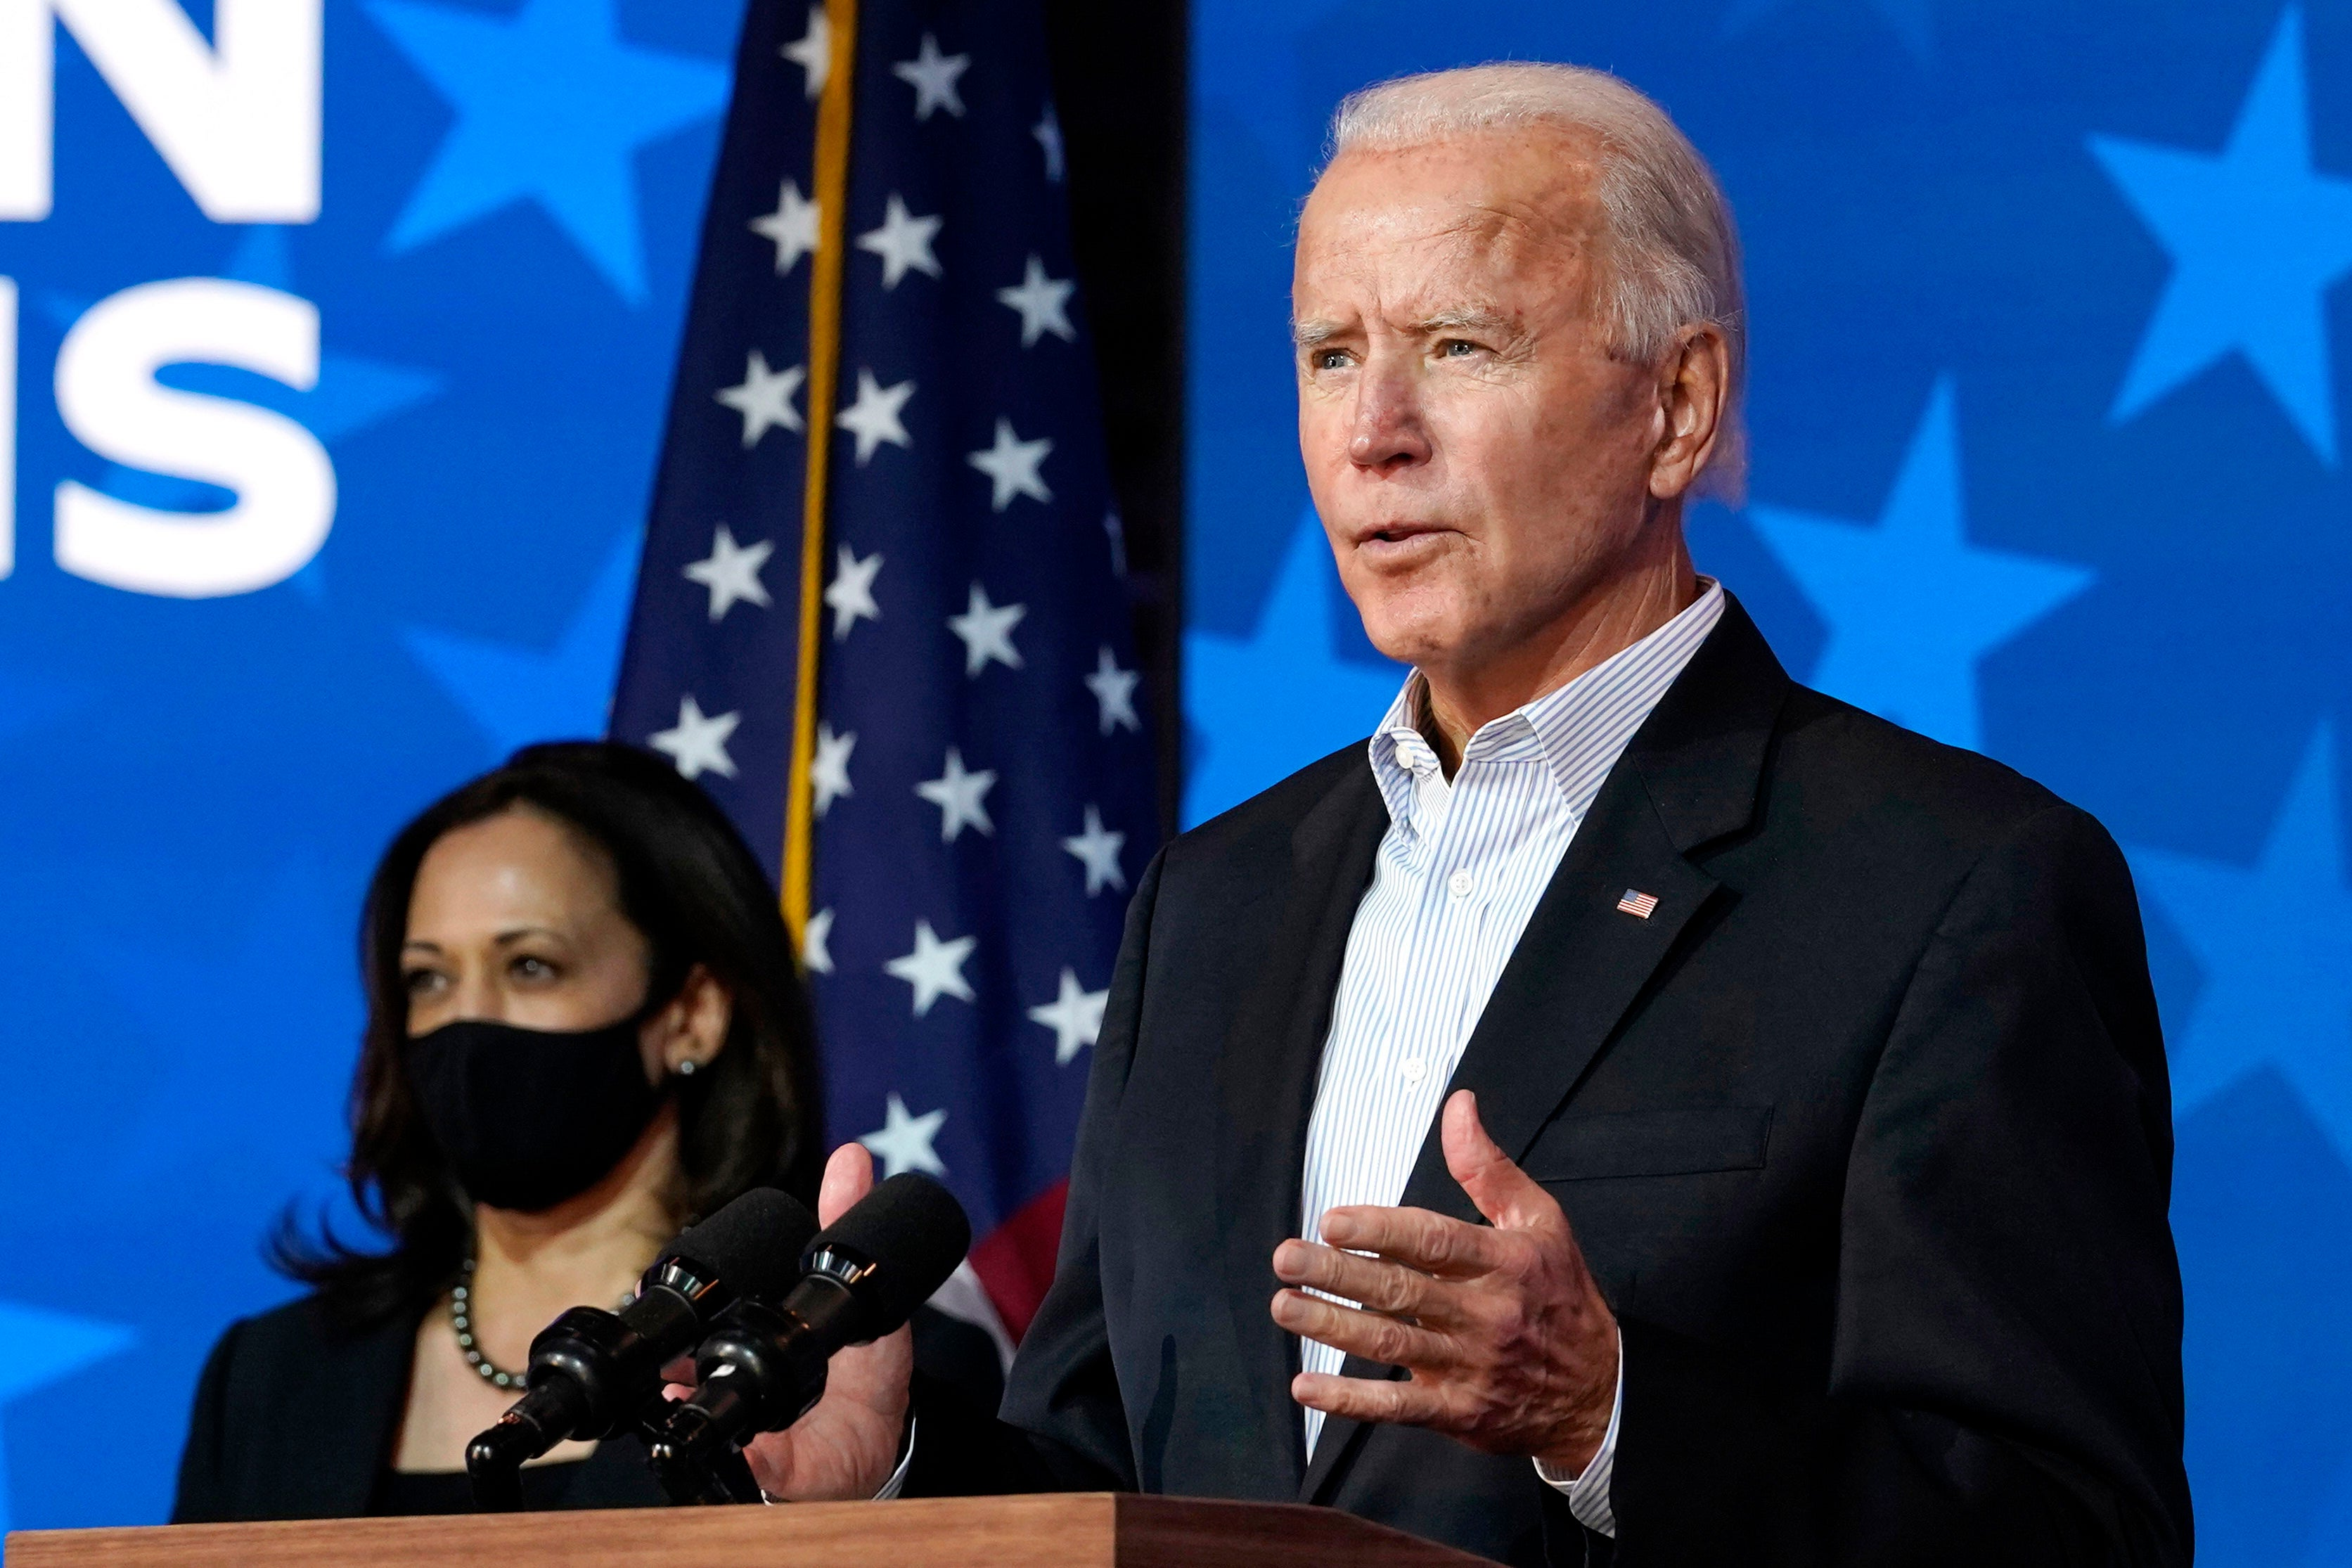 US: Biden Should Act to Ensure Rights for All